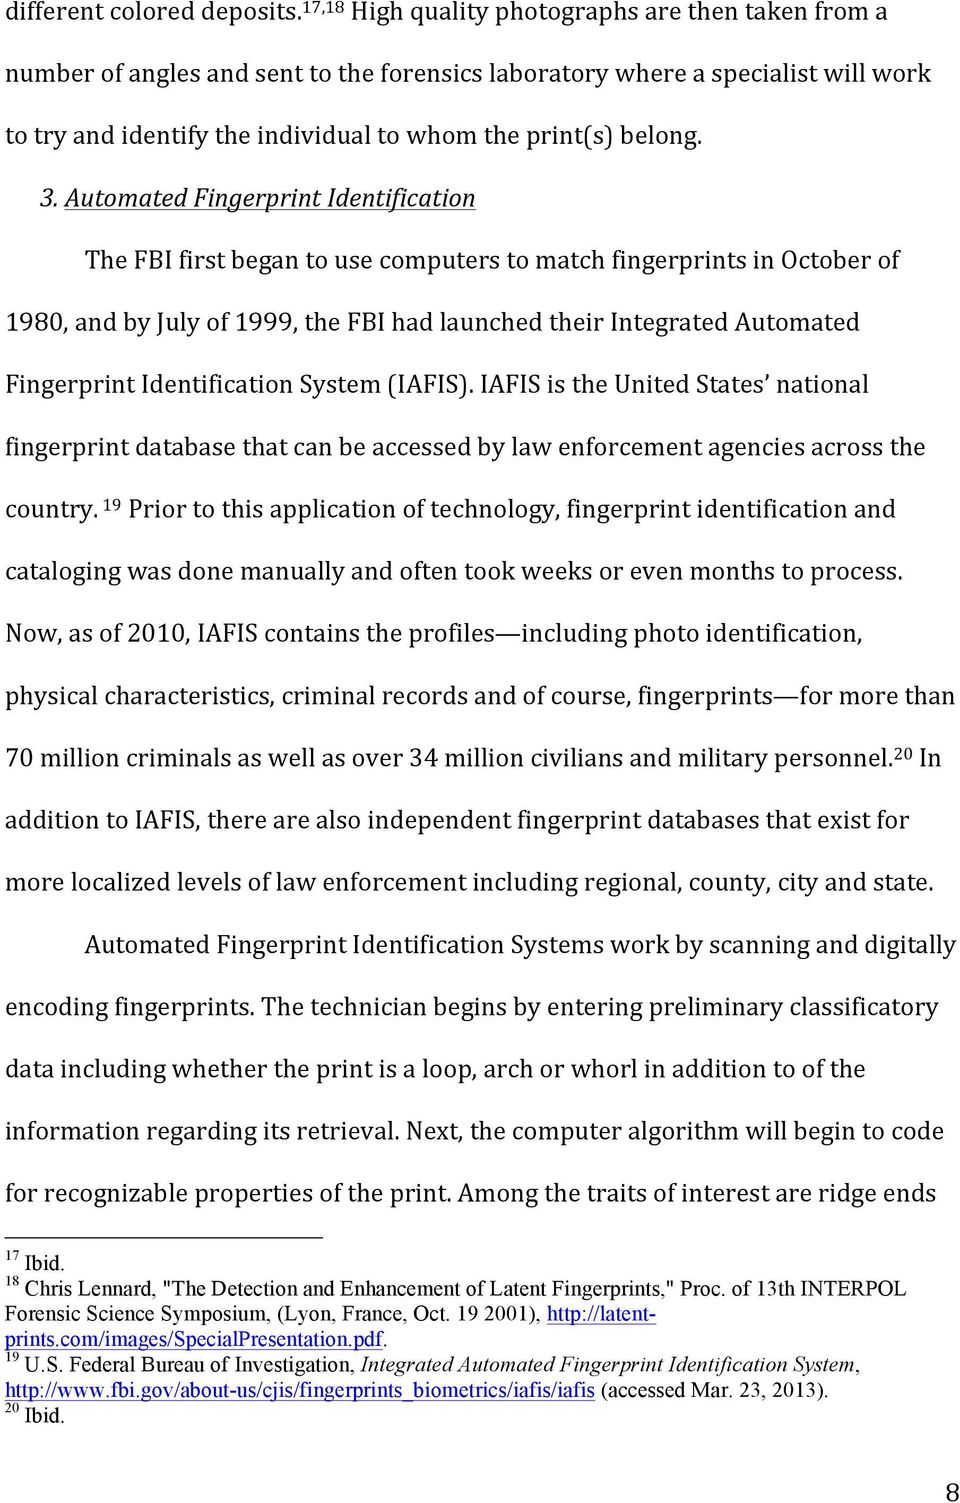 3. Automated Fingerprint Identification The FBI first began to use computers to match fingerprints in October of 1980, and by July of 1999, the FBI had launched their Integrated Automated Fingerprint